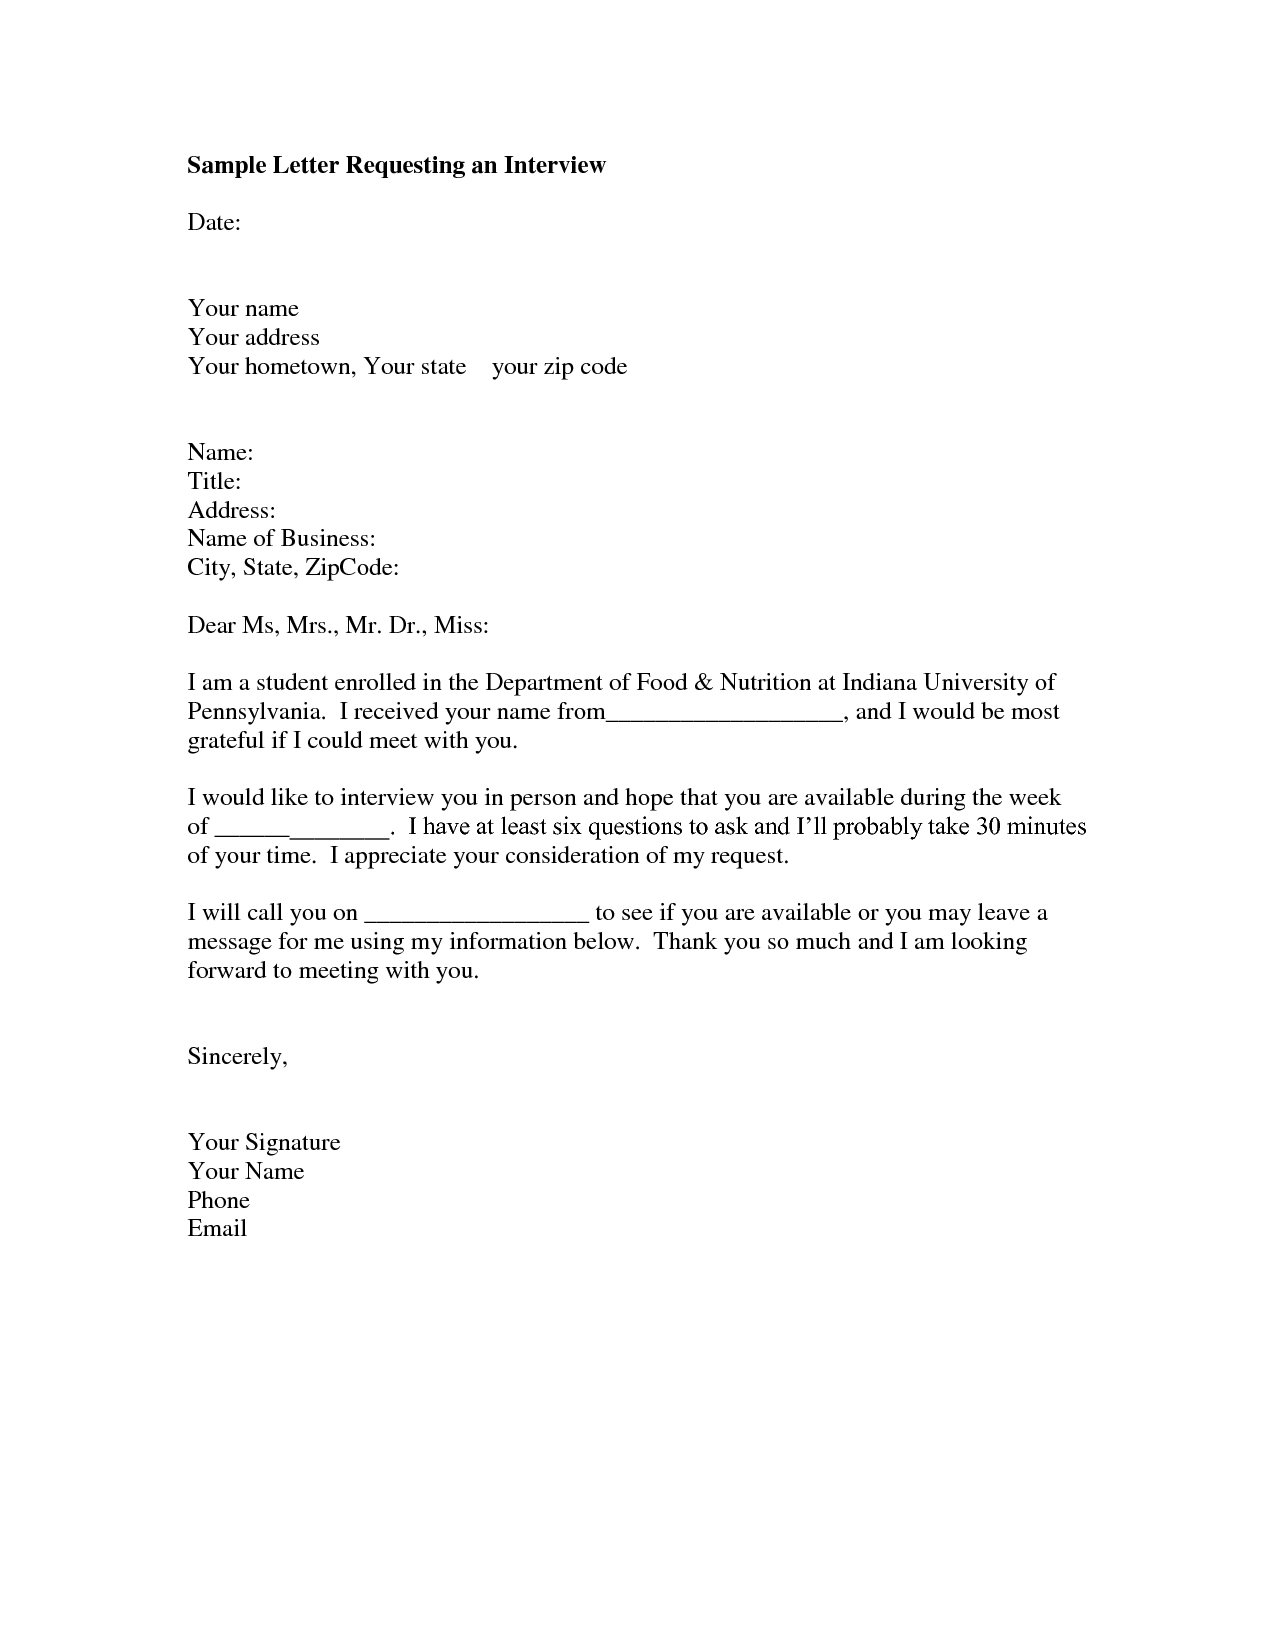 Interview request letter sample format of a letter you can use to interview request letter sample format of a letter you can use to request an interview with a prospecitive employer expocarfo Gallery